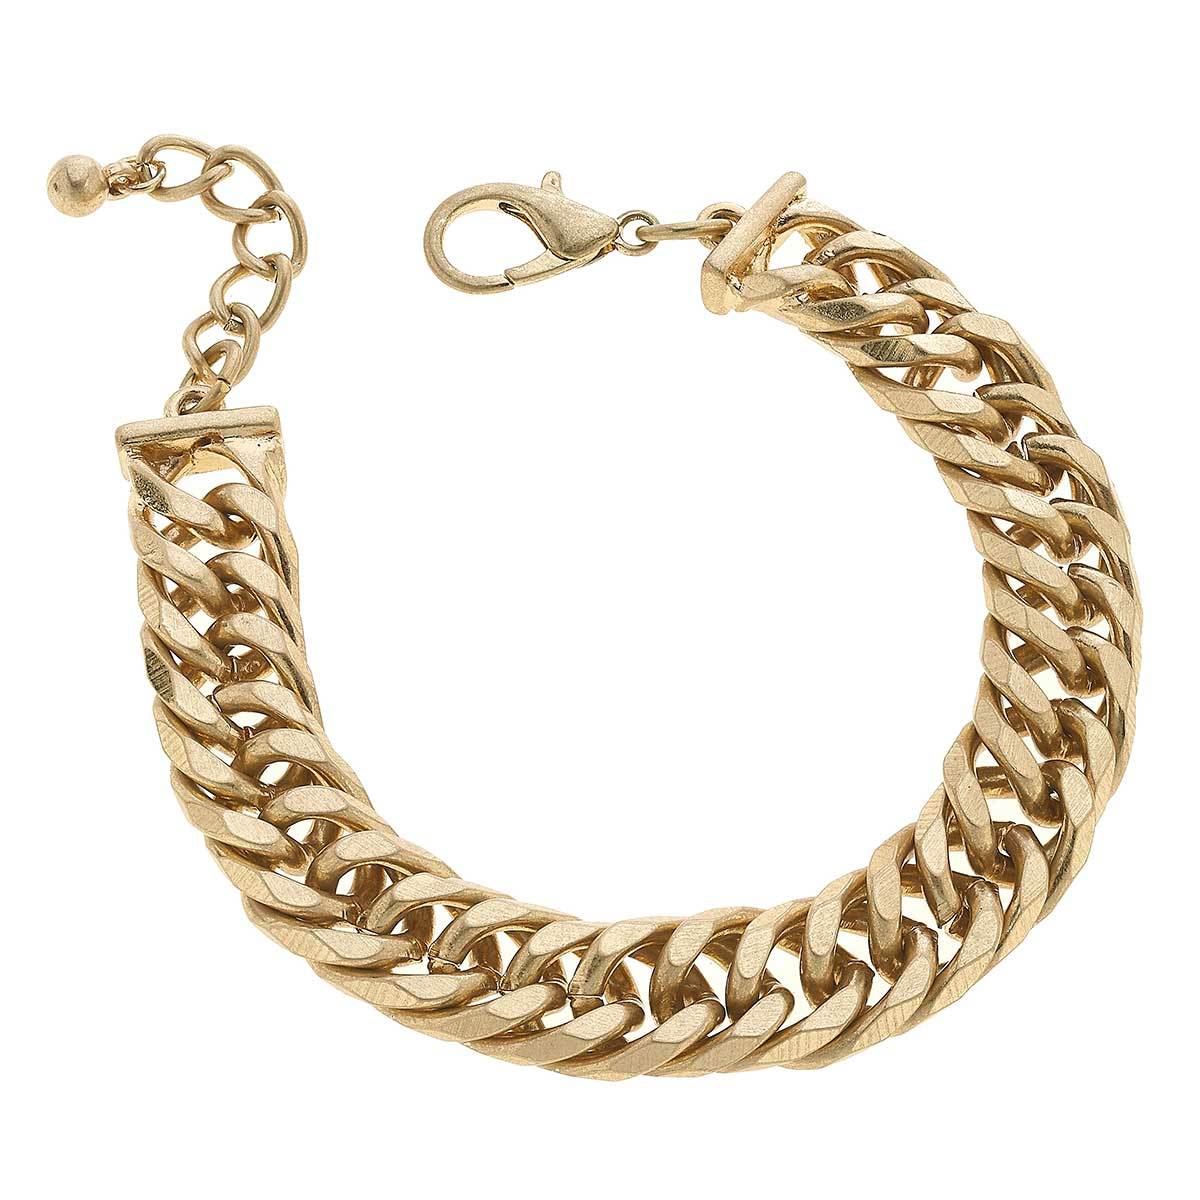 Phoenix Chunky Chain Link Bracelet in Worn Gold